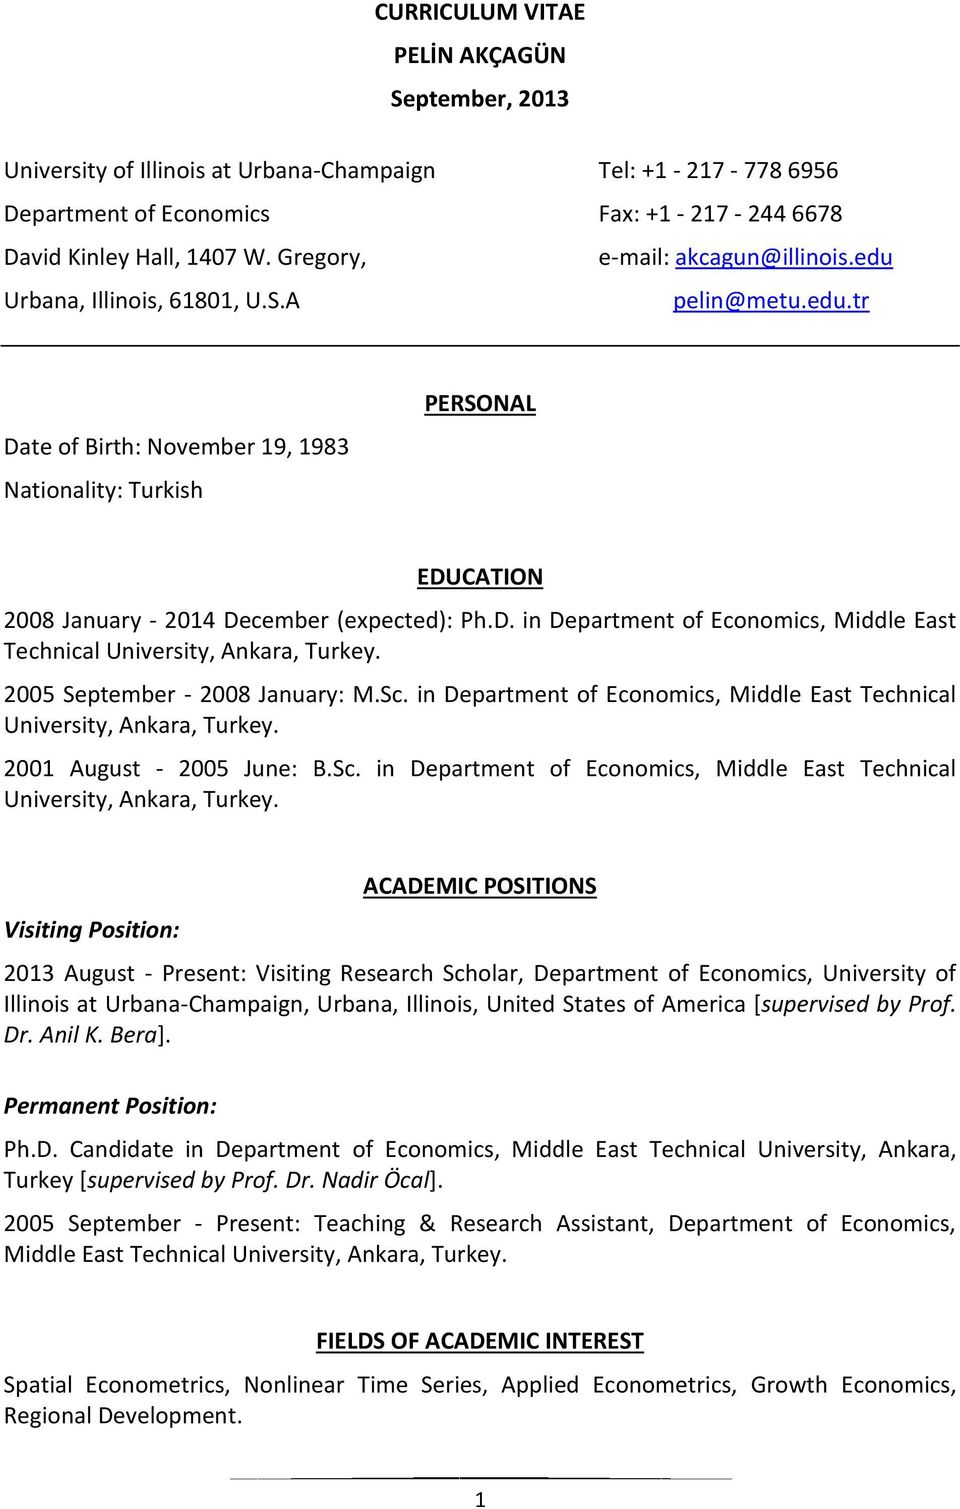 D. in Department of Economics, Middle East Technical University, Ankara, Turkey. 2005 September - 2008 January: M.Sc. in Department of Economics, Middle East Technical University, Ankara, Turkey. 2001 August - 2005 June: B.